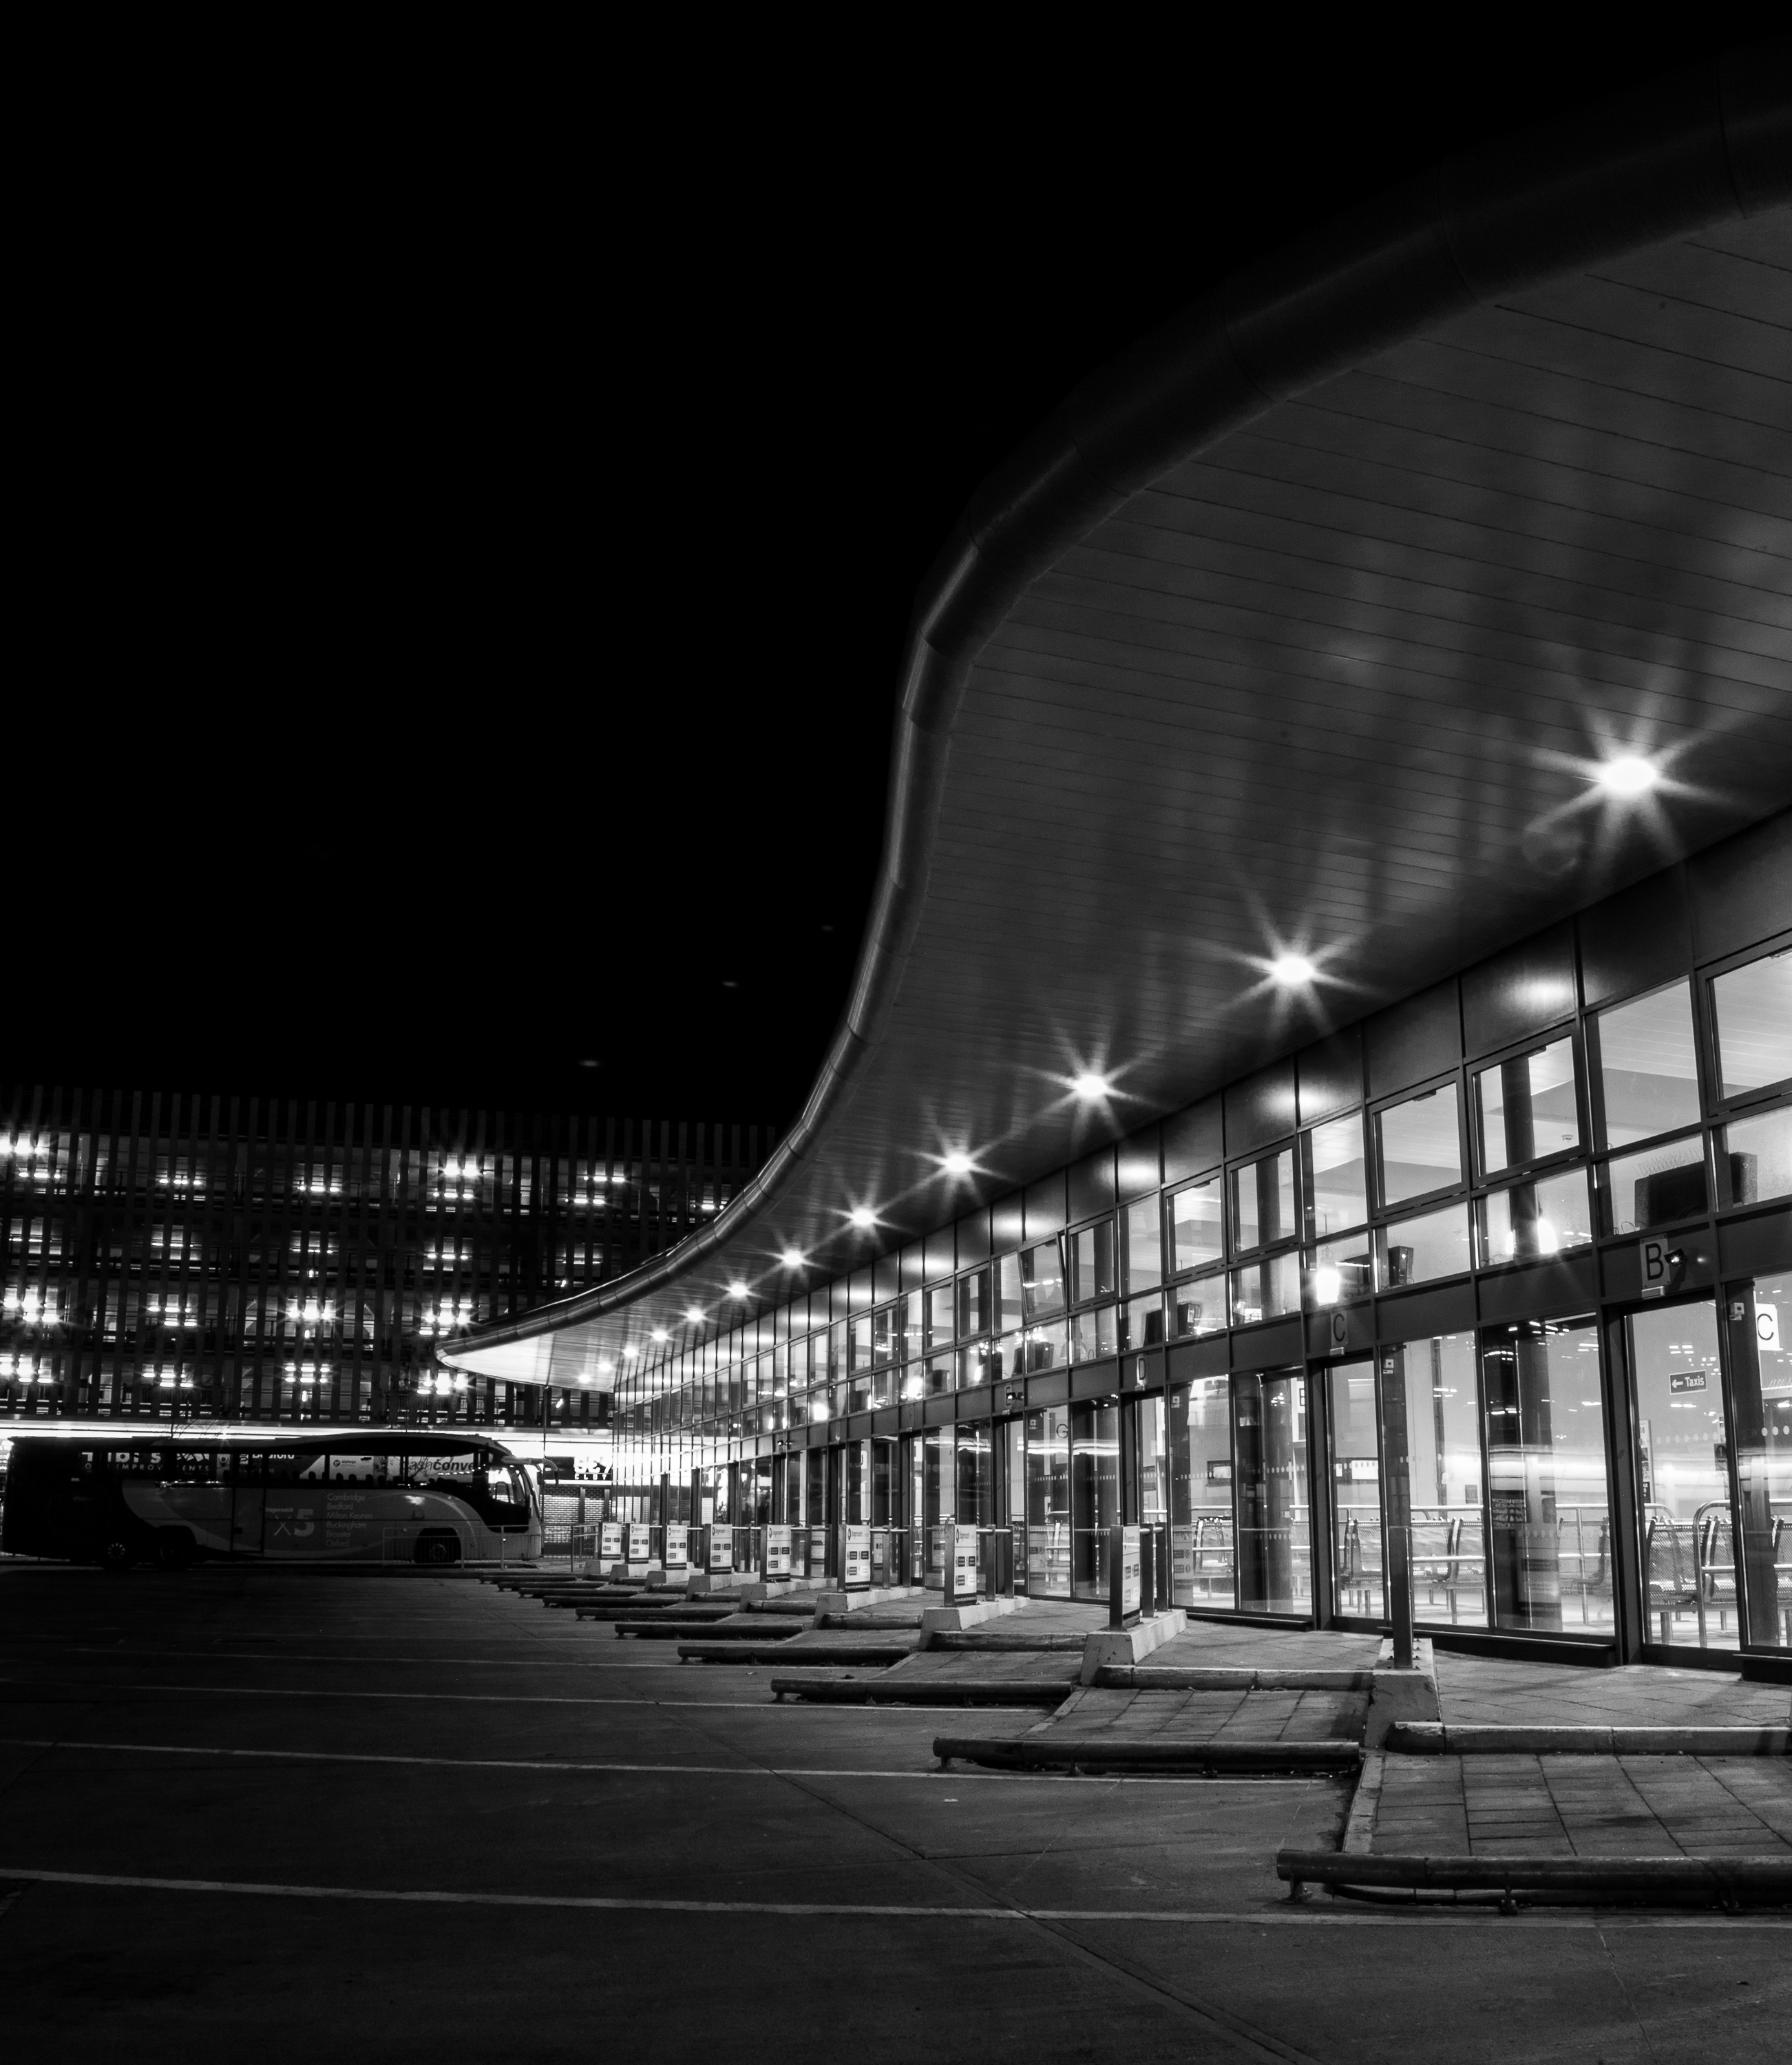 Bedford Bus Station by Mincingyoda